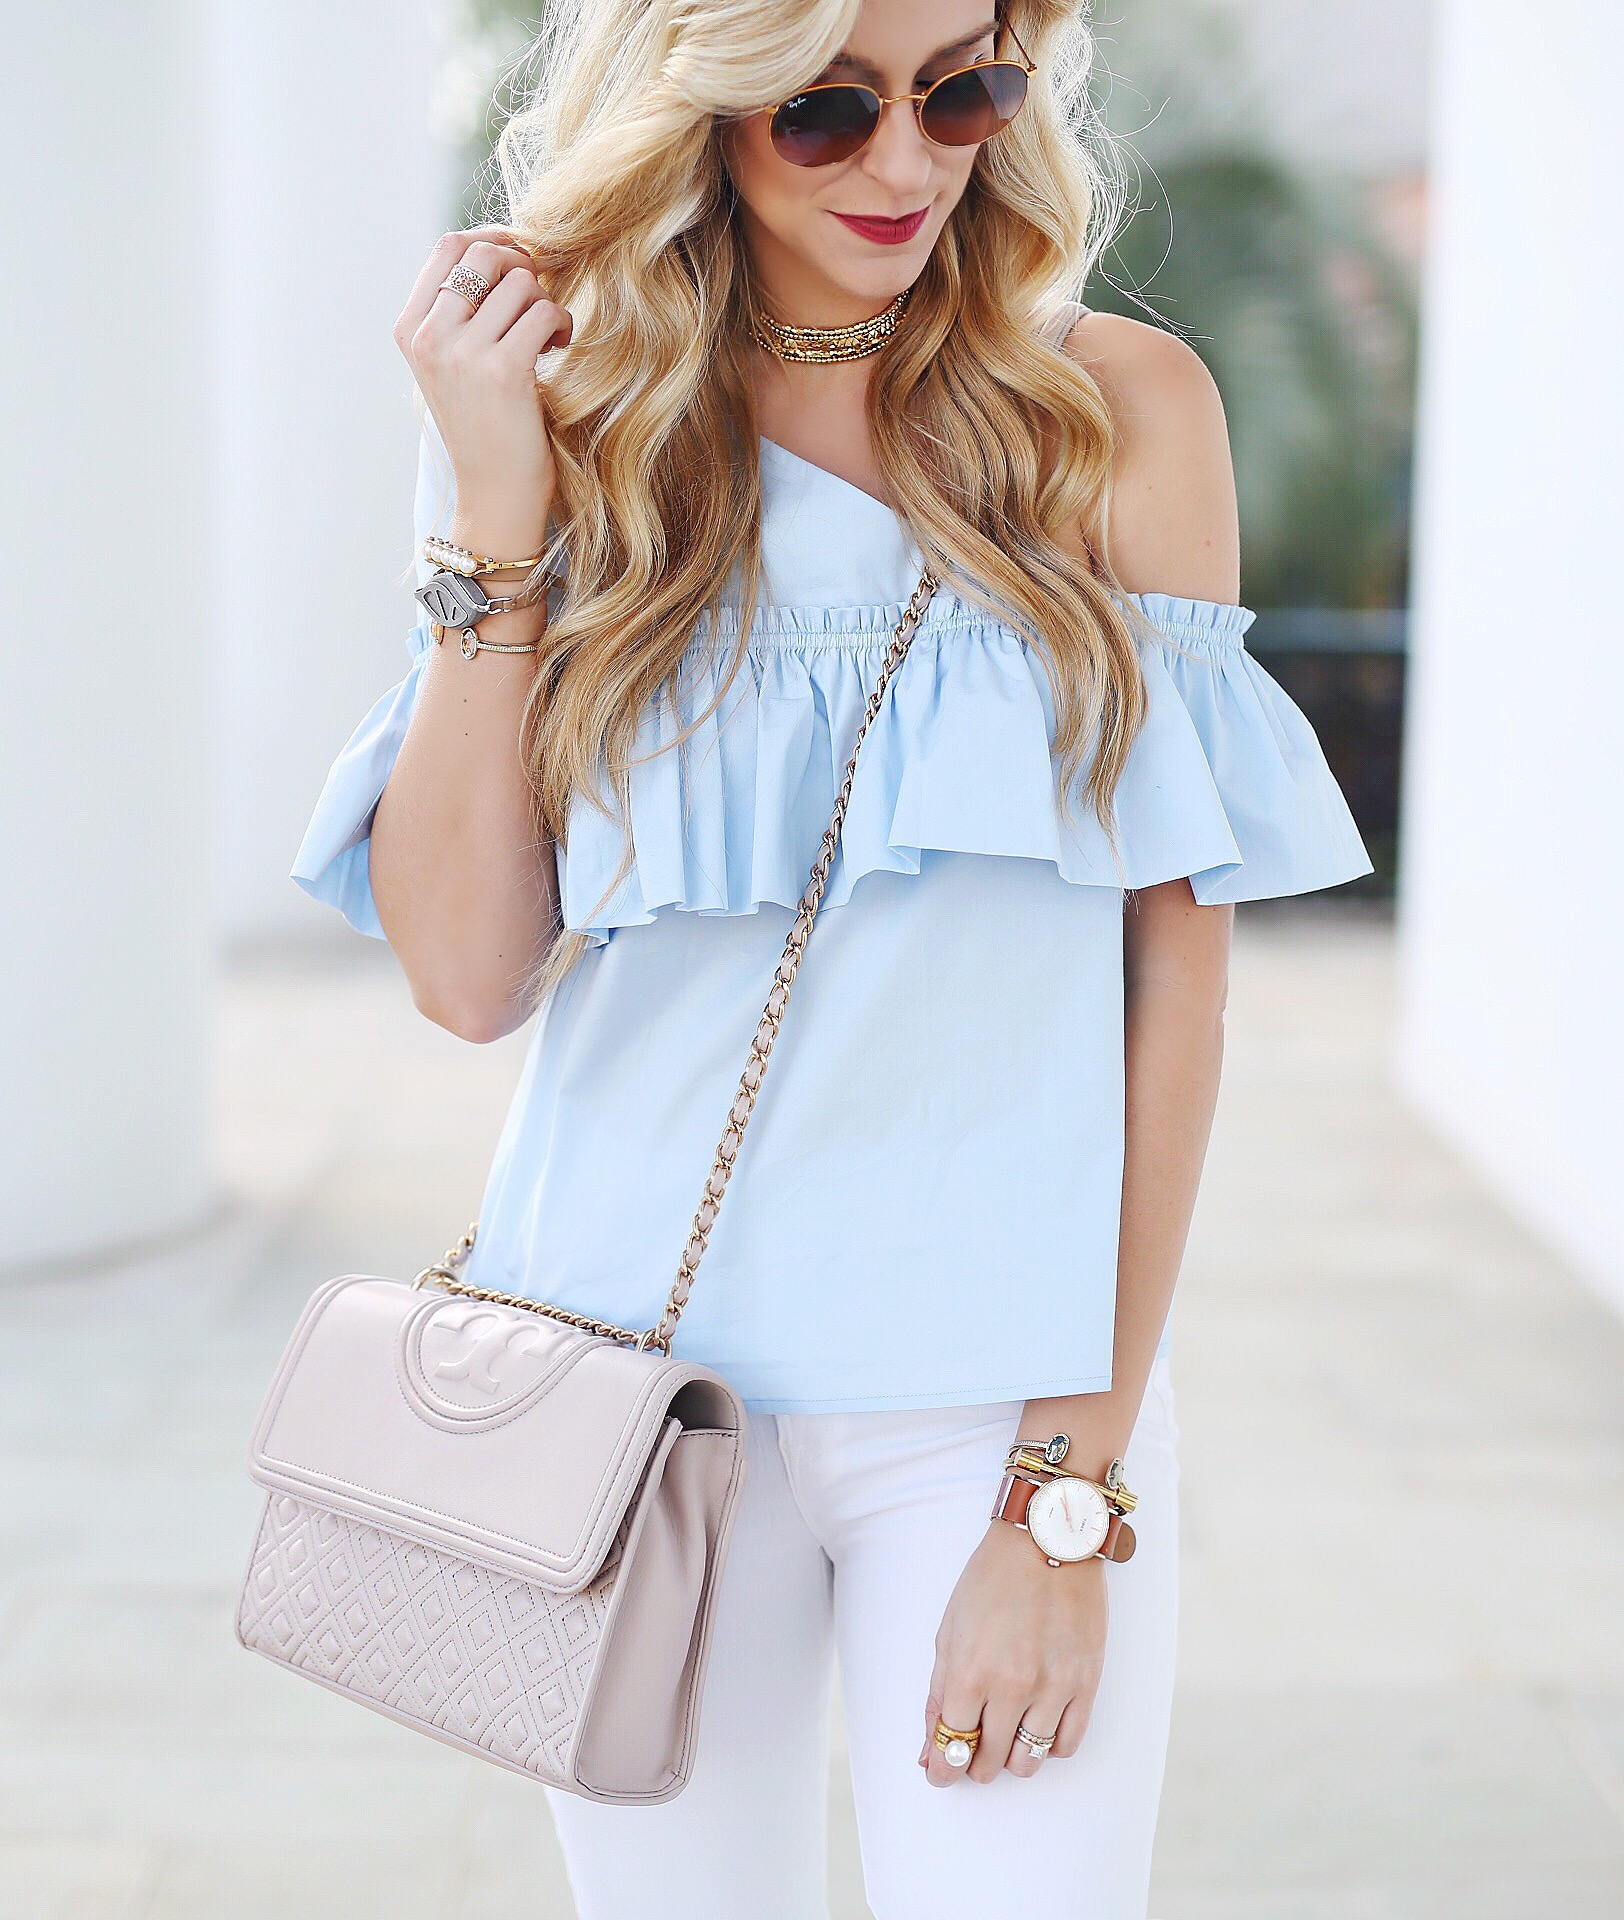 One Shoulder Ruffle Top | Spring Outfit Ideas